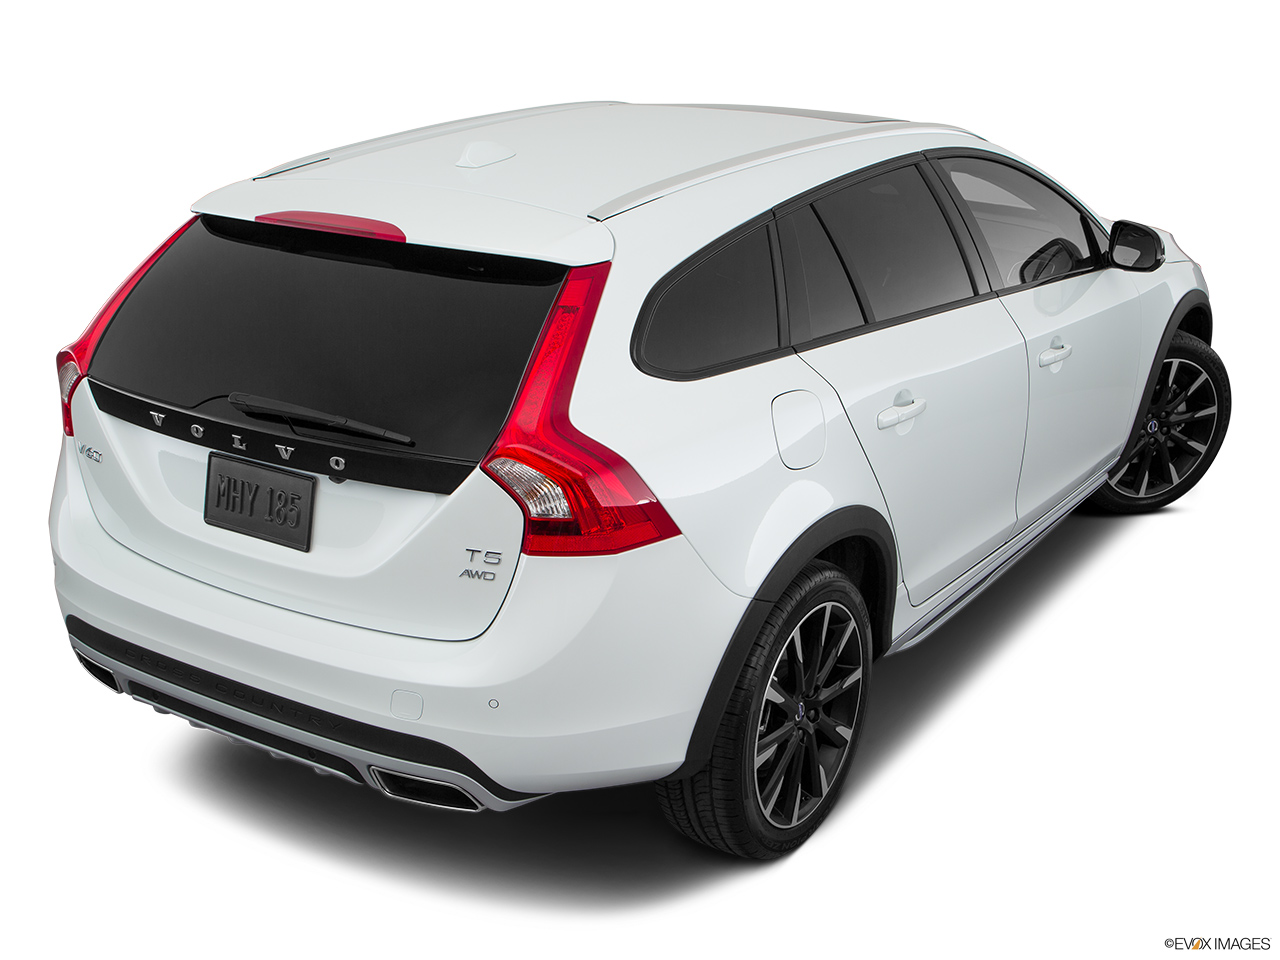 2018 Volvo V60 Cross Country T5 AWD Rear 3/4 angle view.